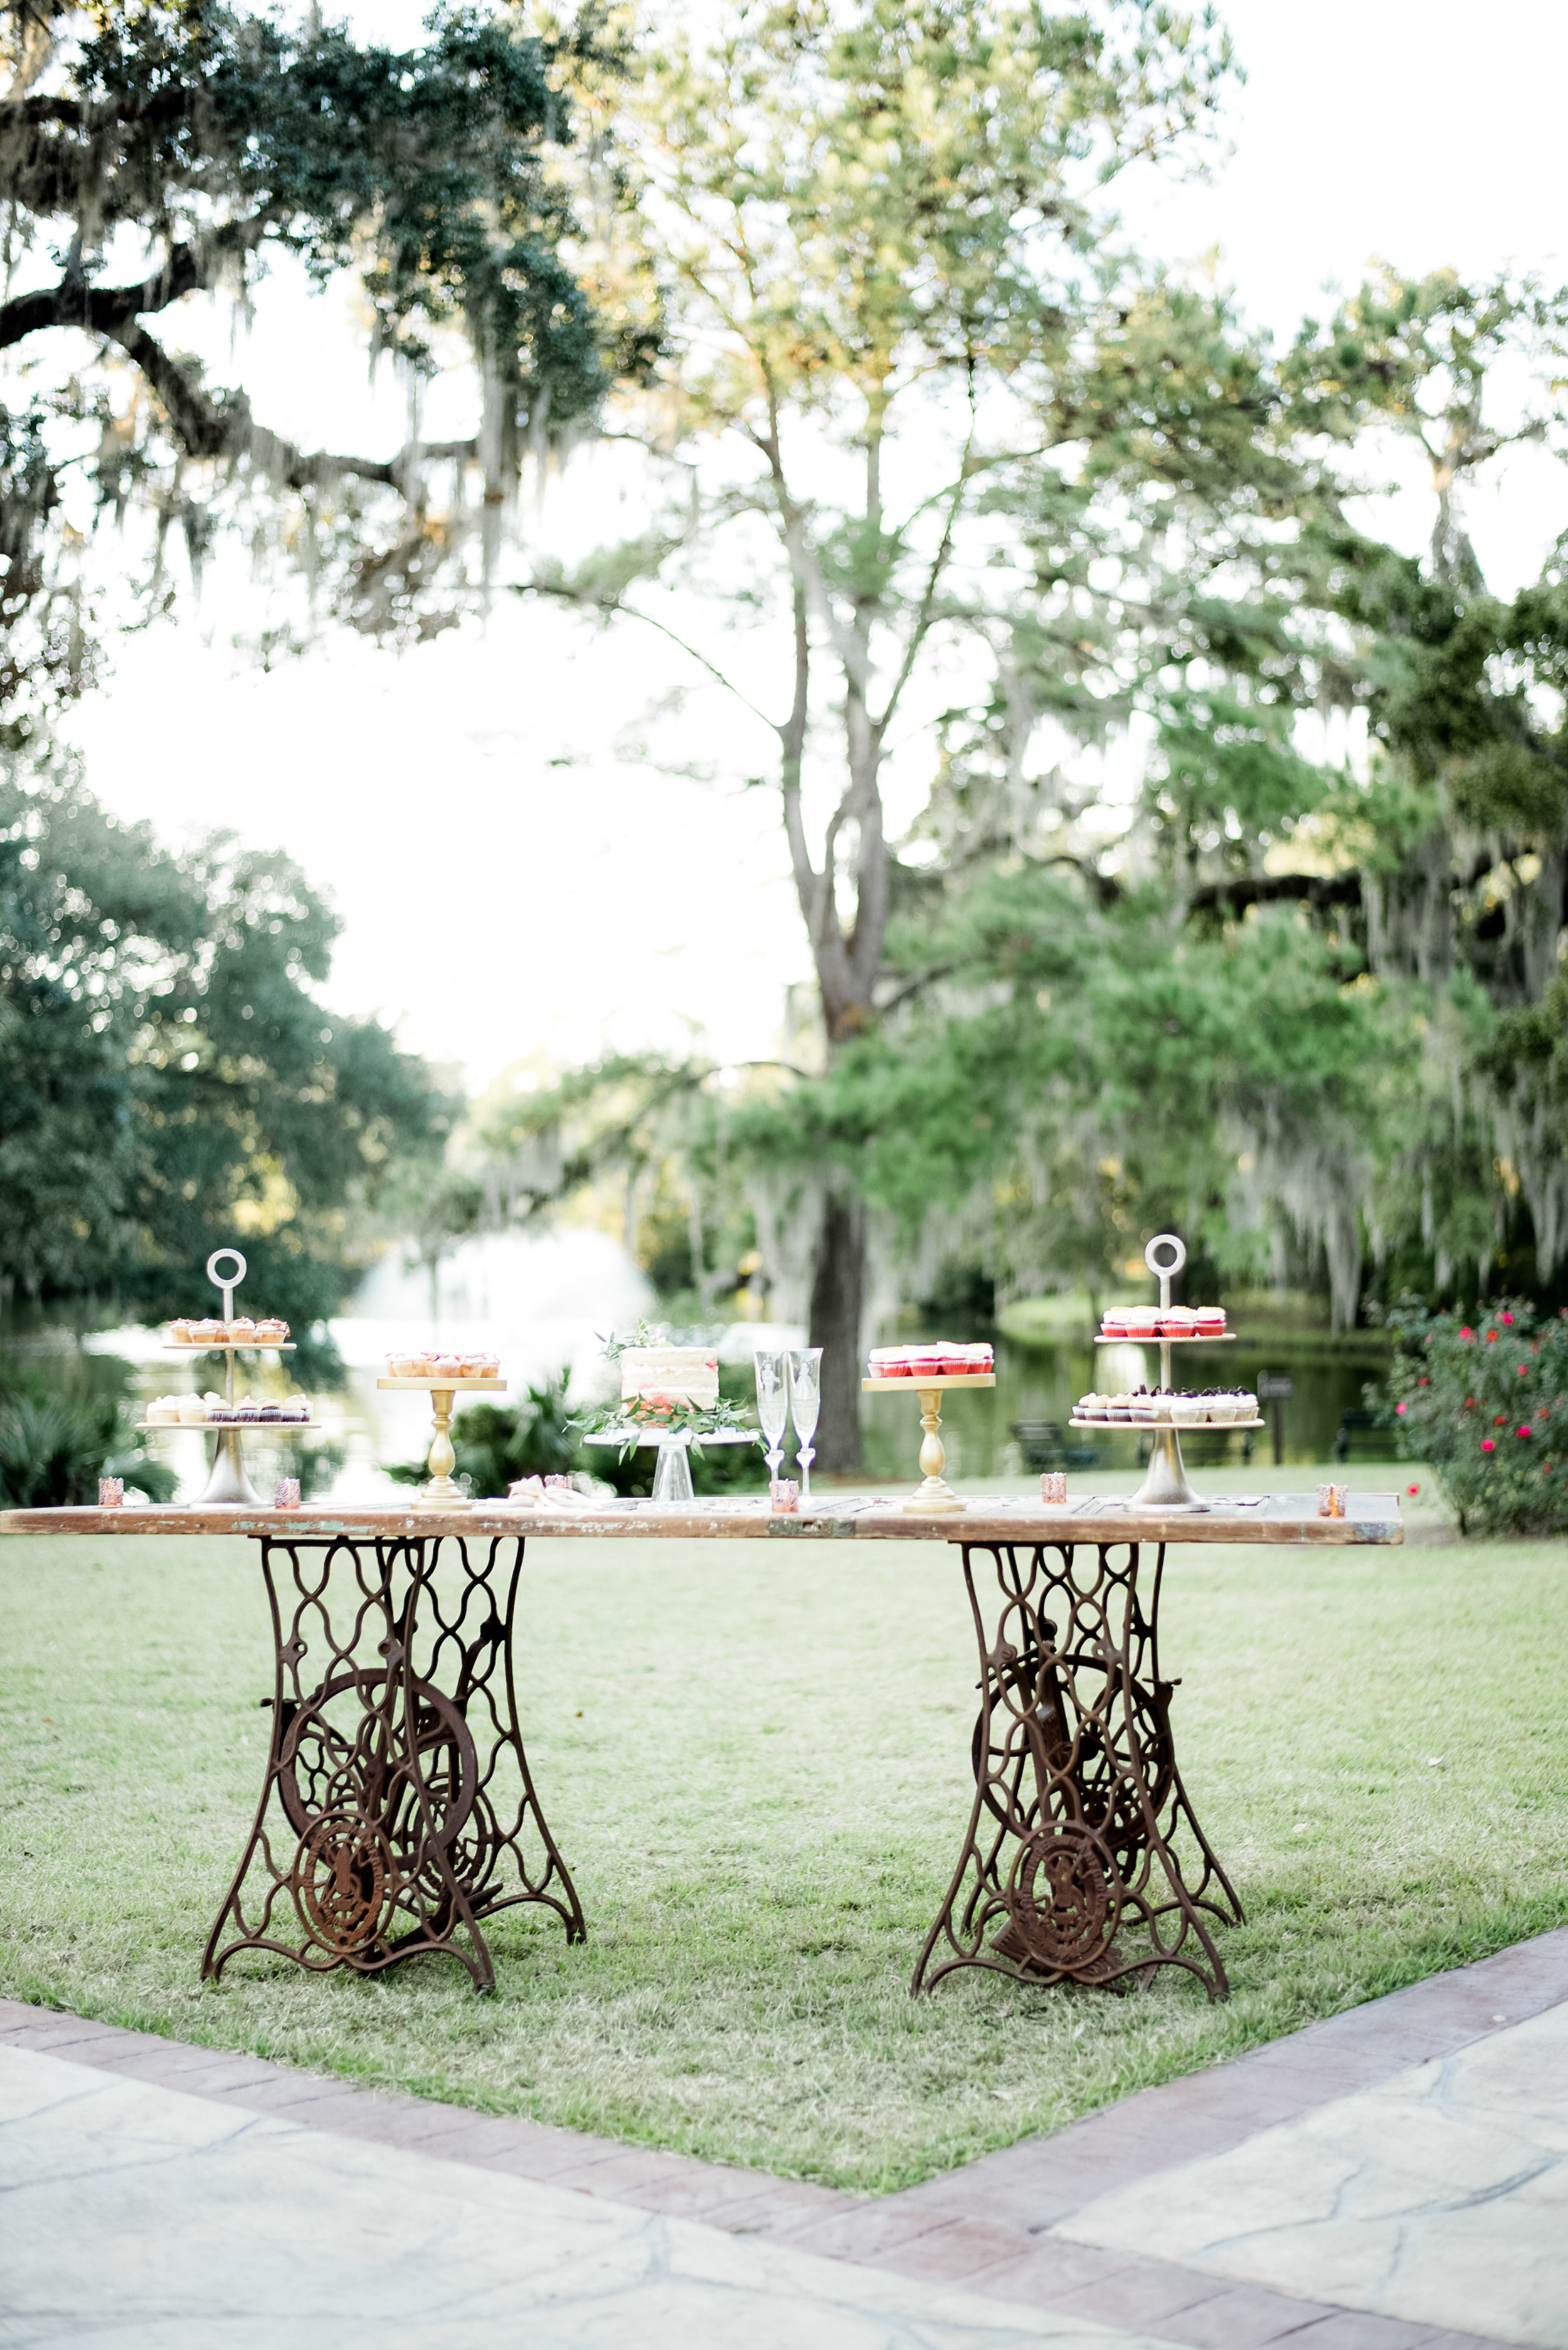 A CLASSIC FALL WEDDING AT THE LEGARE WARING HOUSE